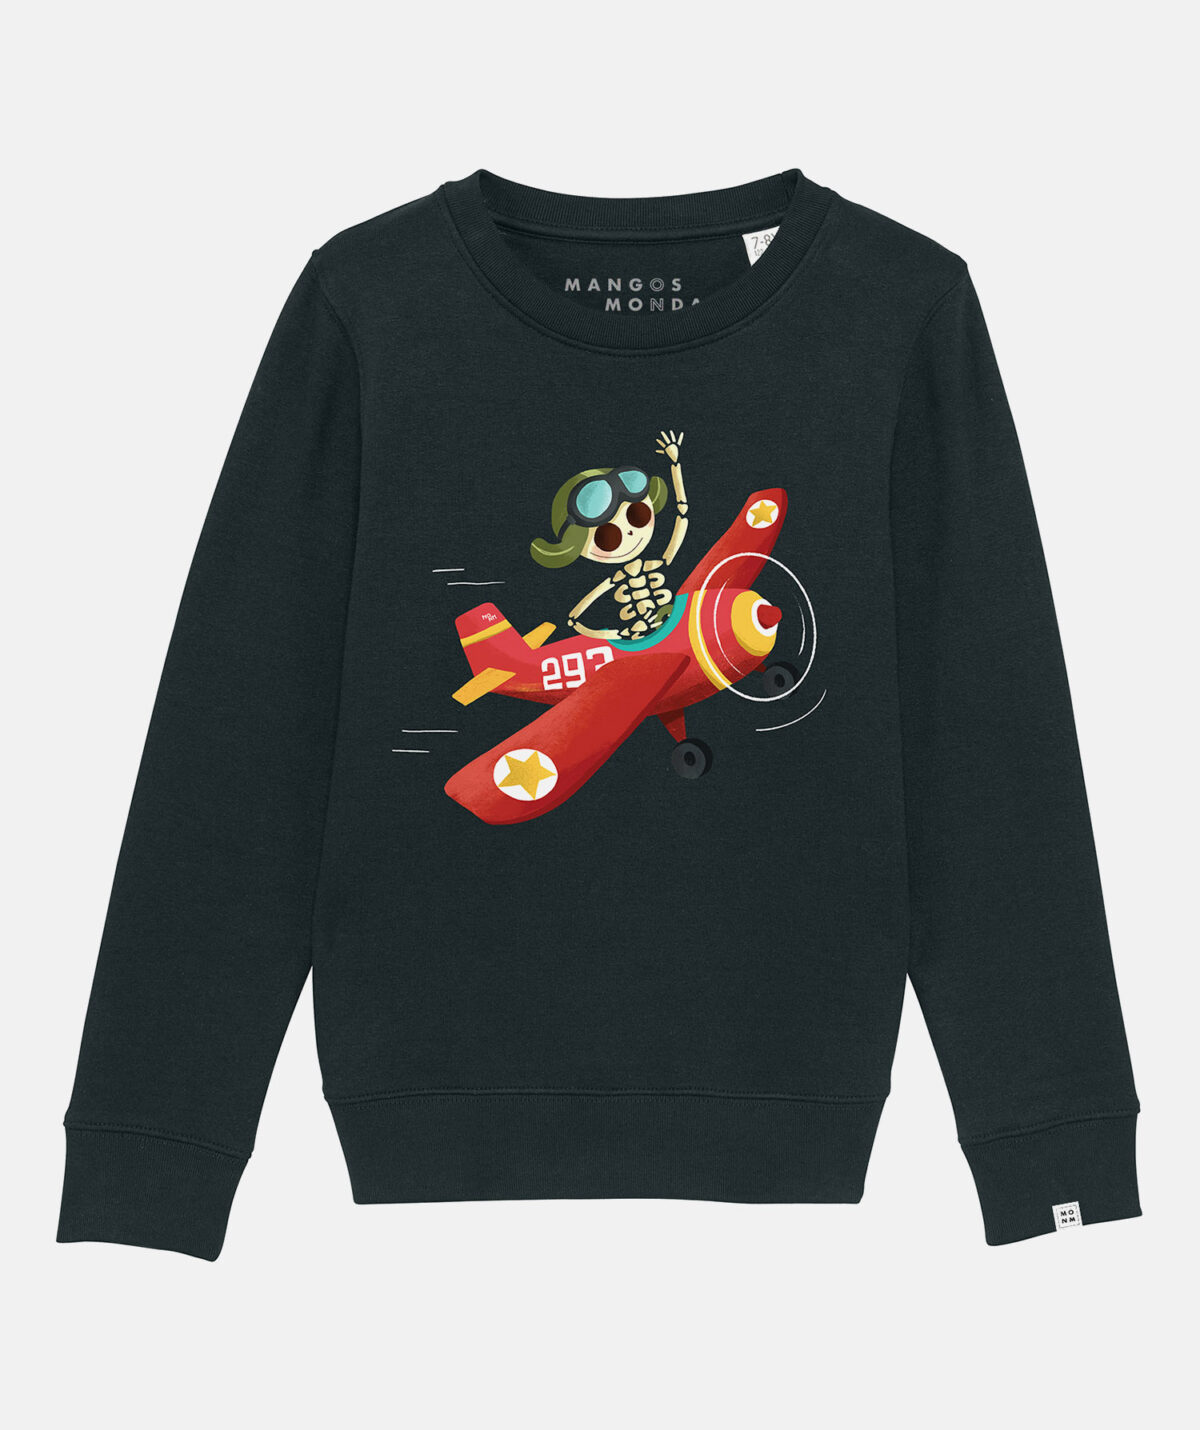 Flying Amigo sweater by Mangos on Monday